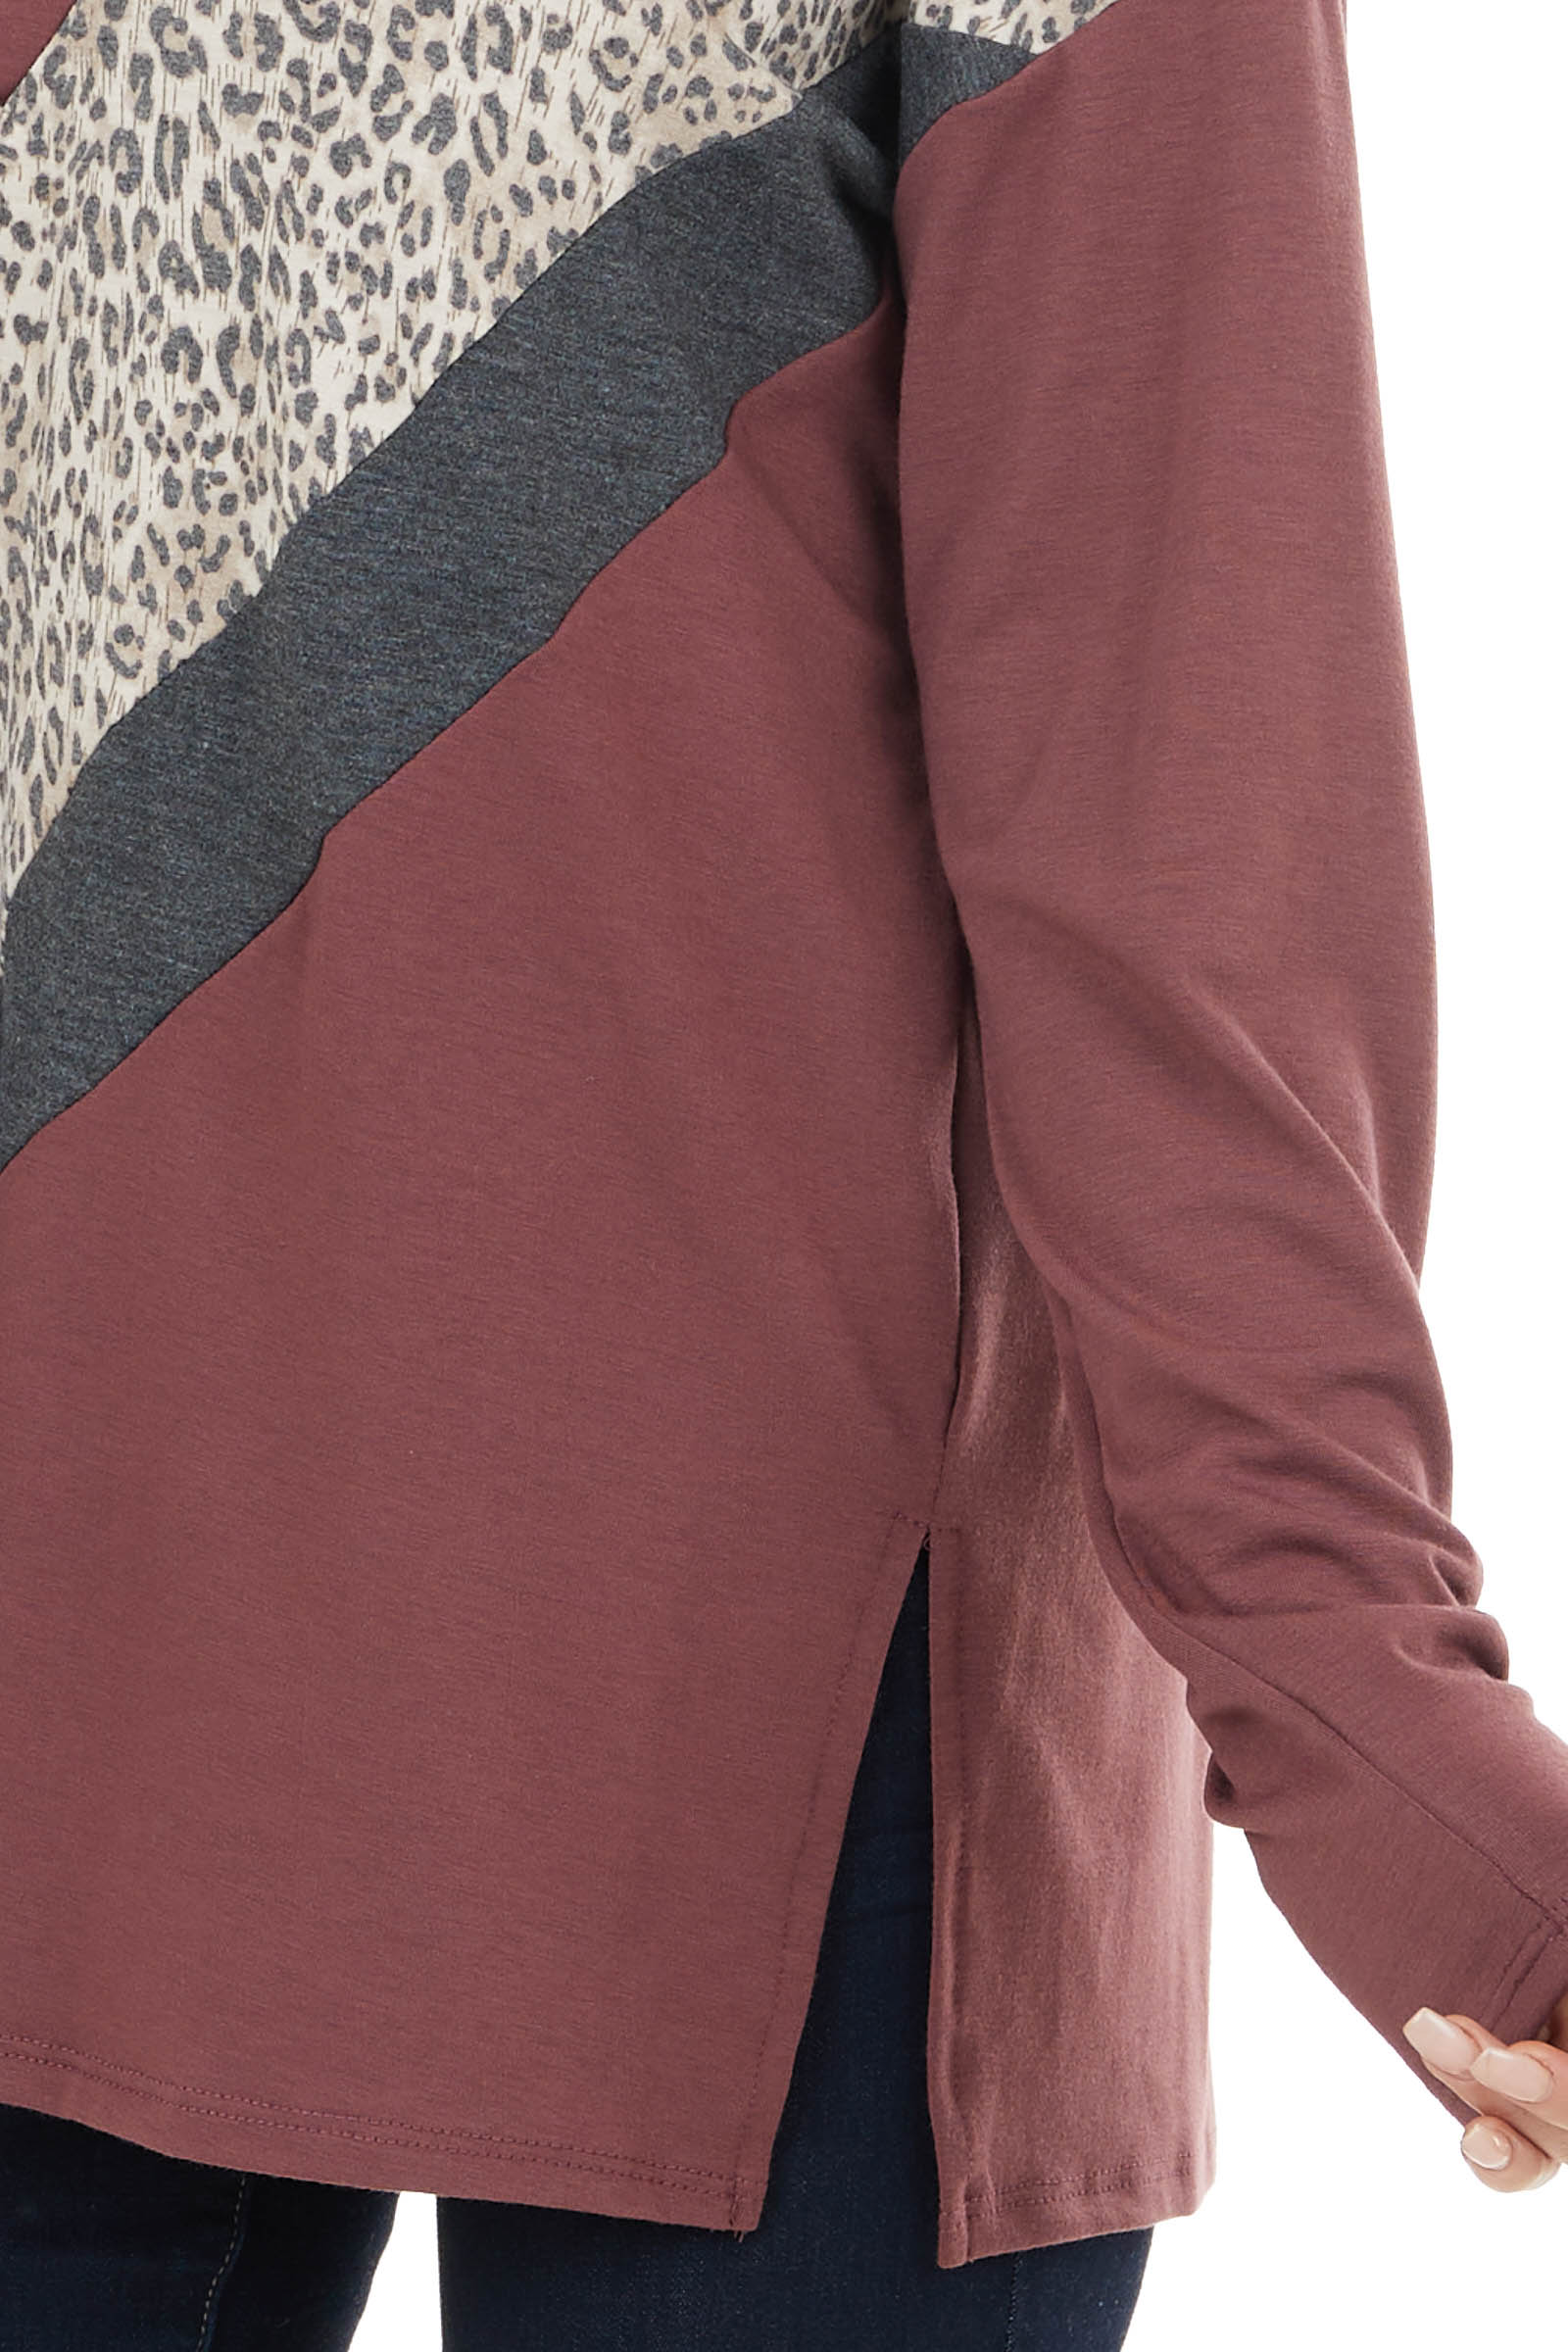 Marsala Colorblock Knit Long Sleeve Top with Leopard Detail